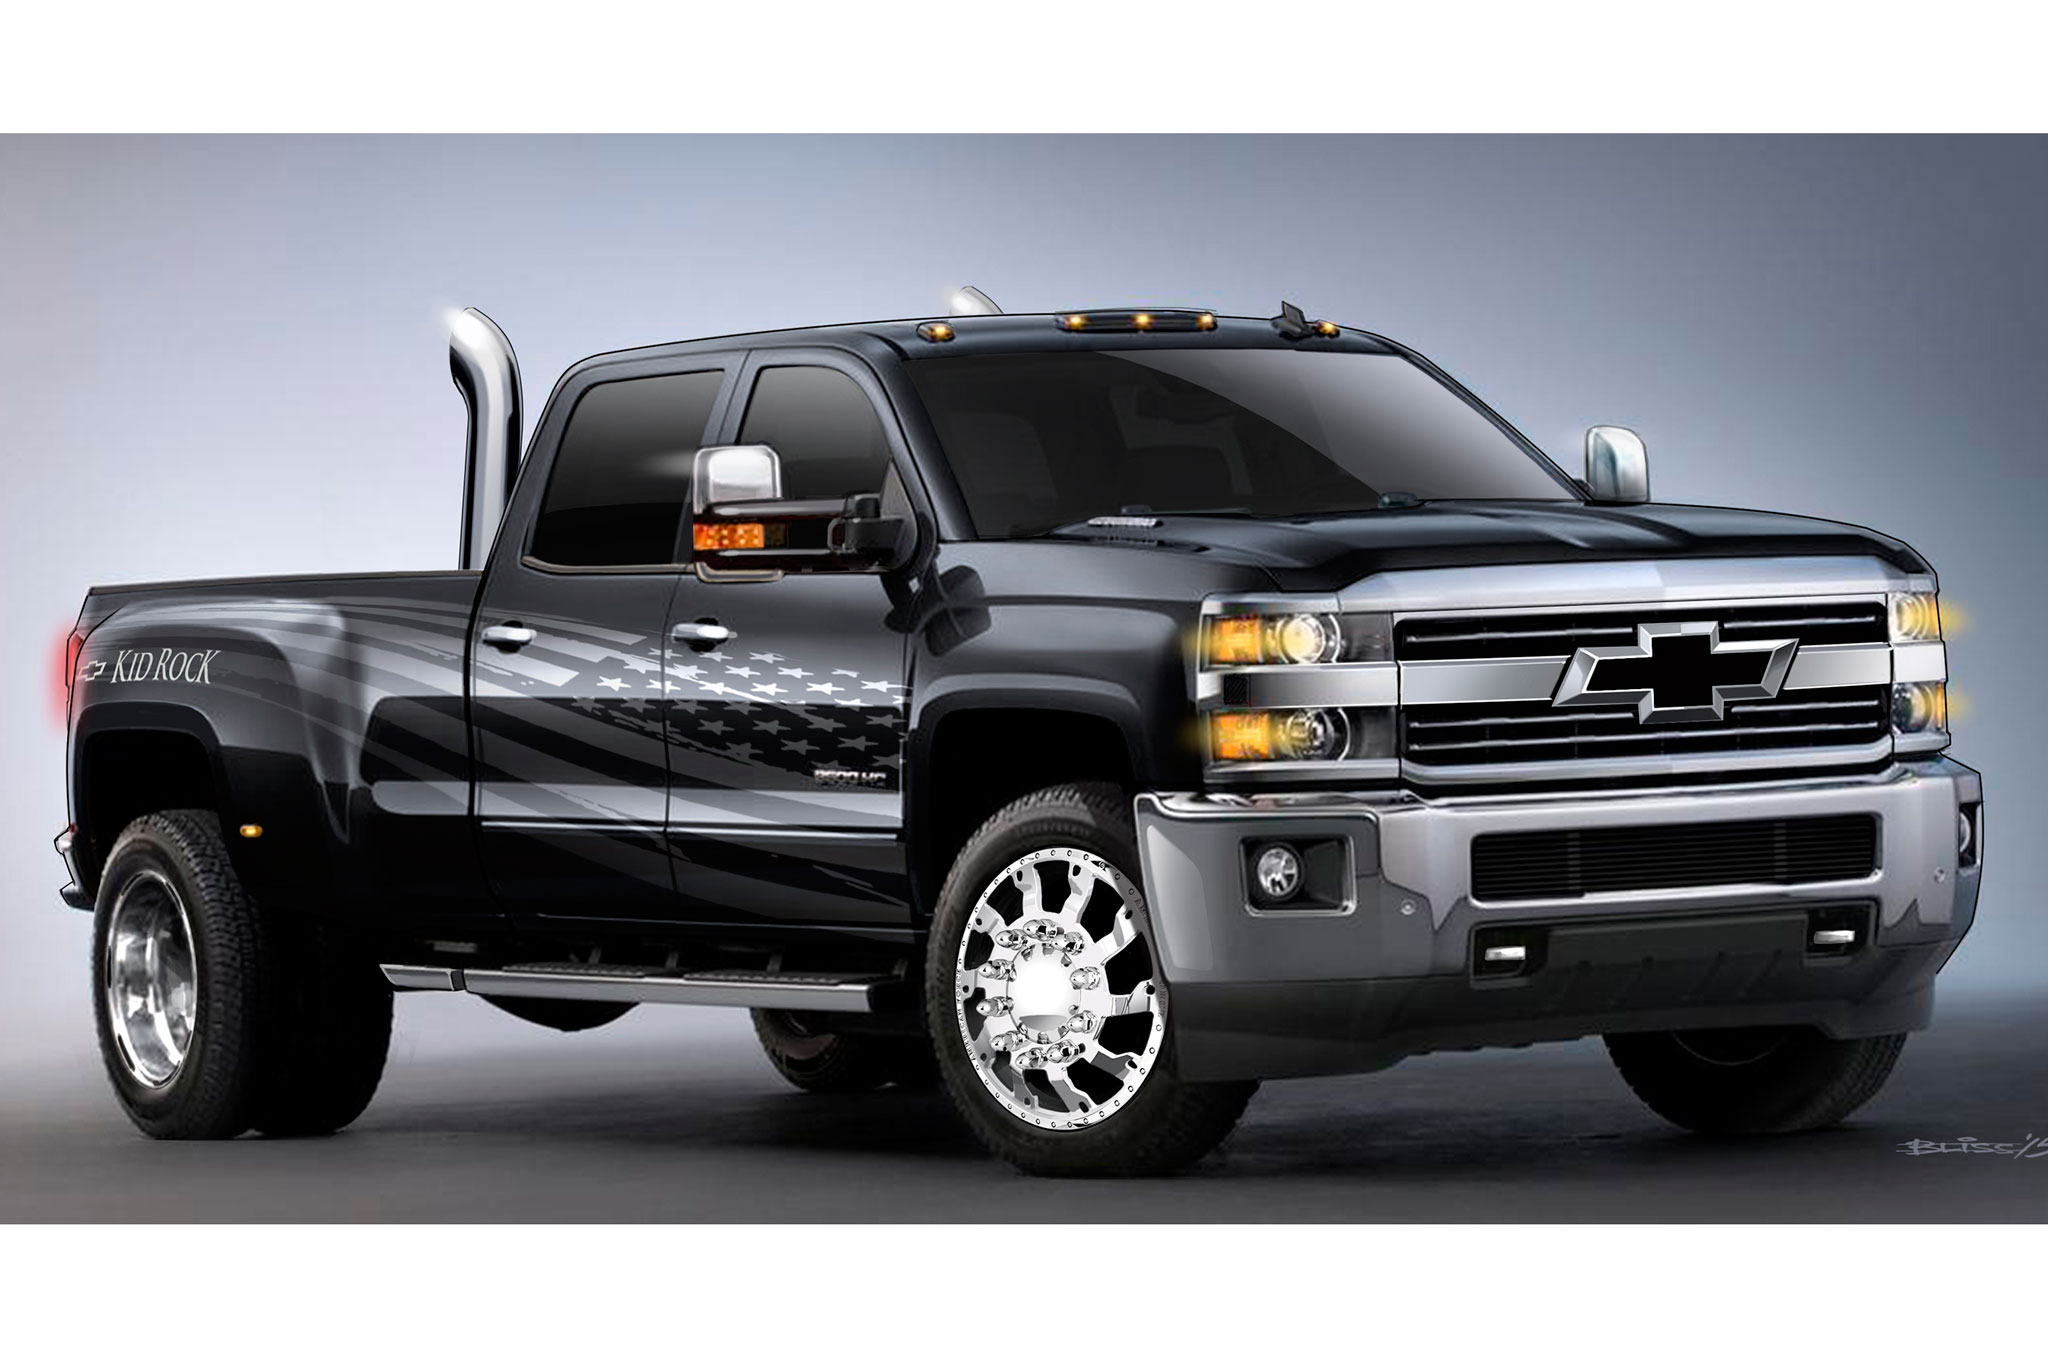 fighter for based the lingenfelter reaper deeper news chevrolet into digging raptor sale silverado